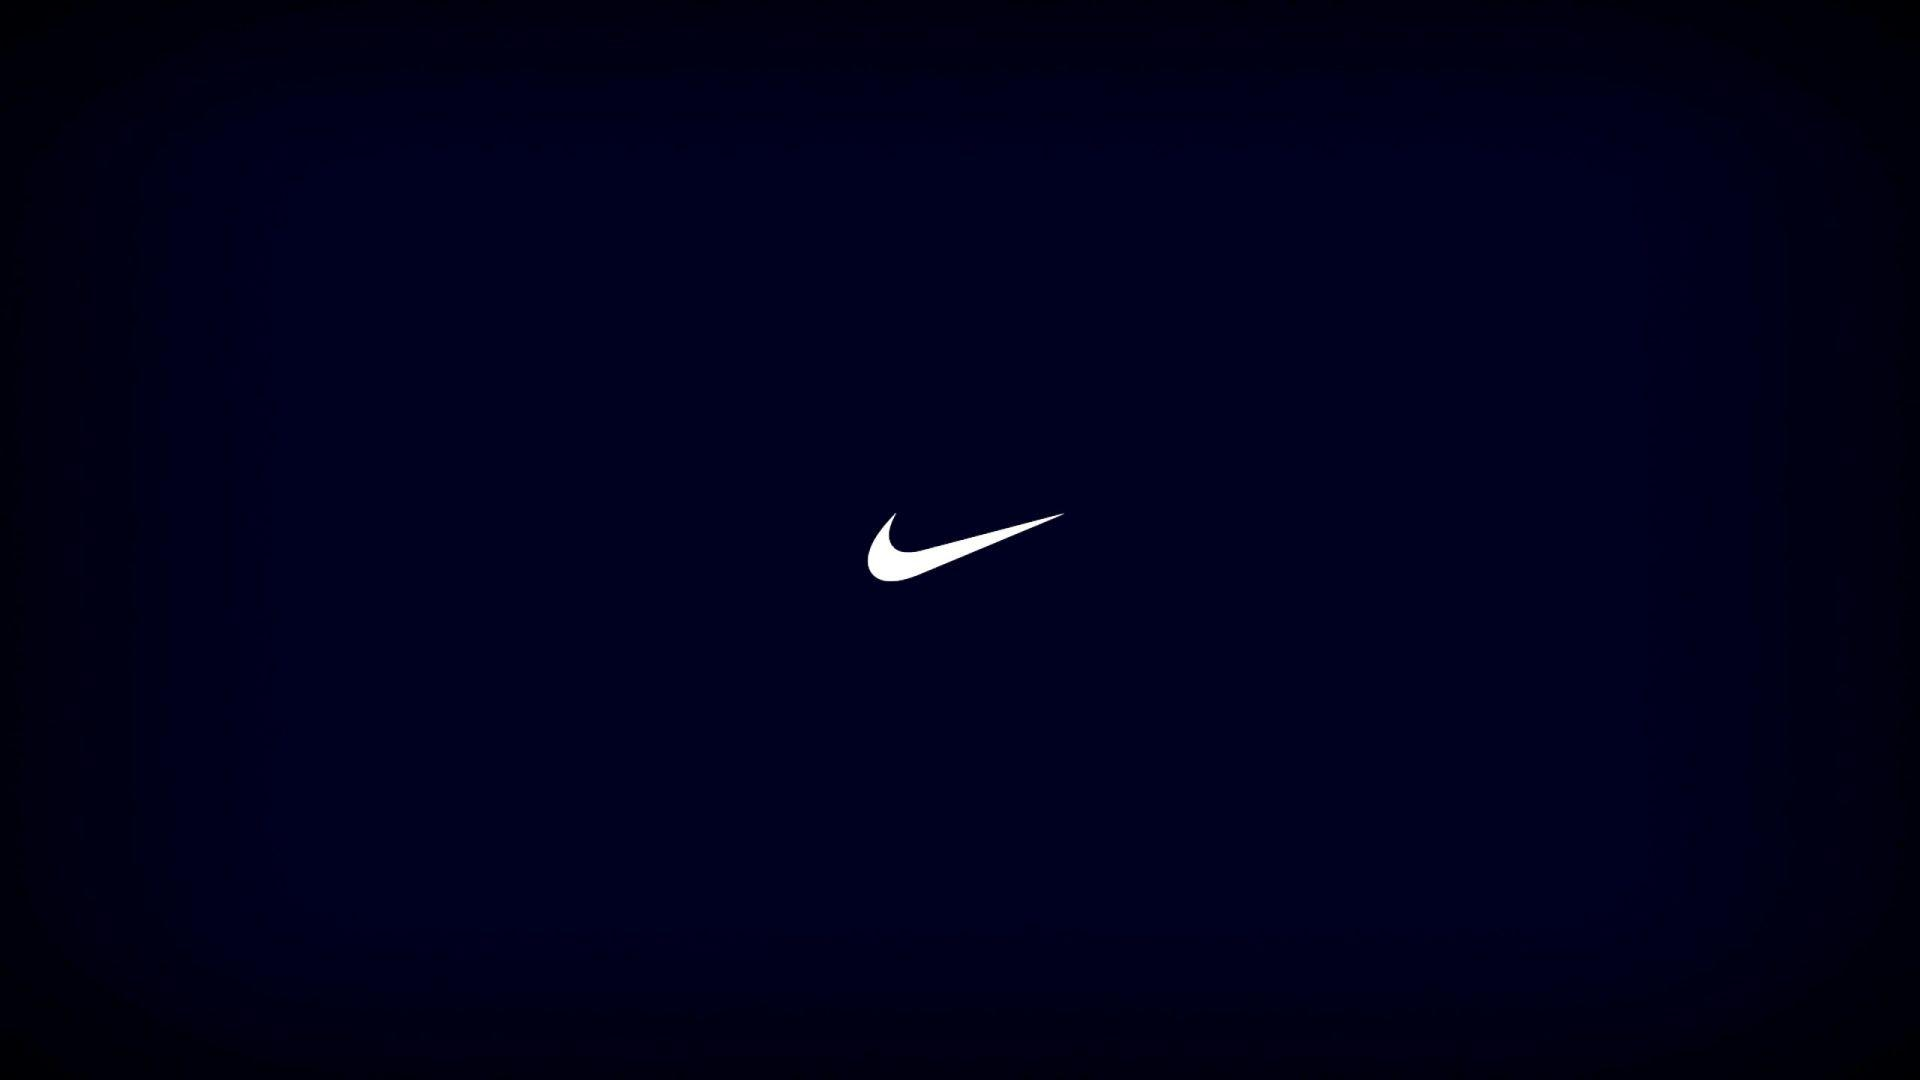 Nike Wallpapers HD 2017 - Wallpaper Cave